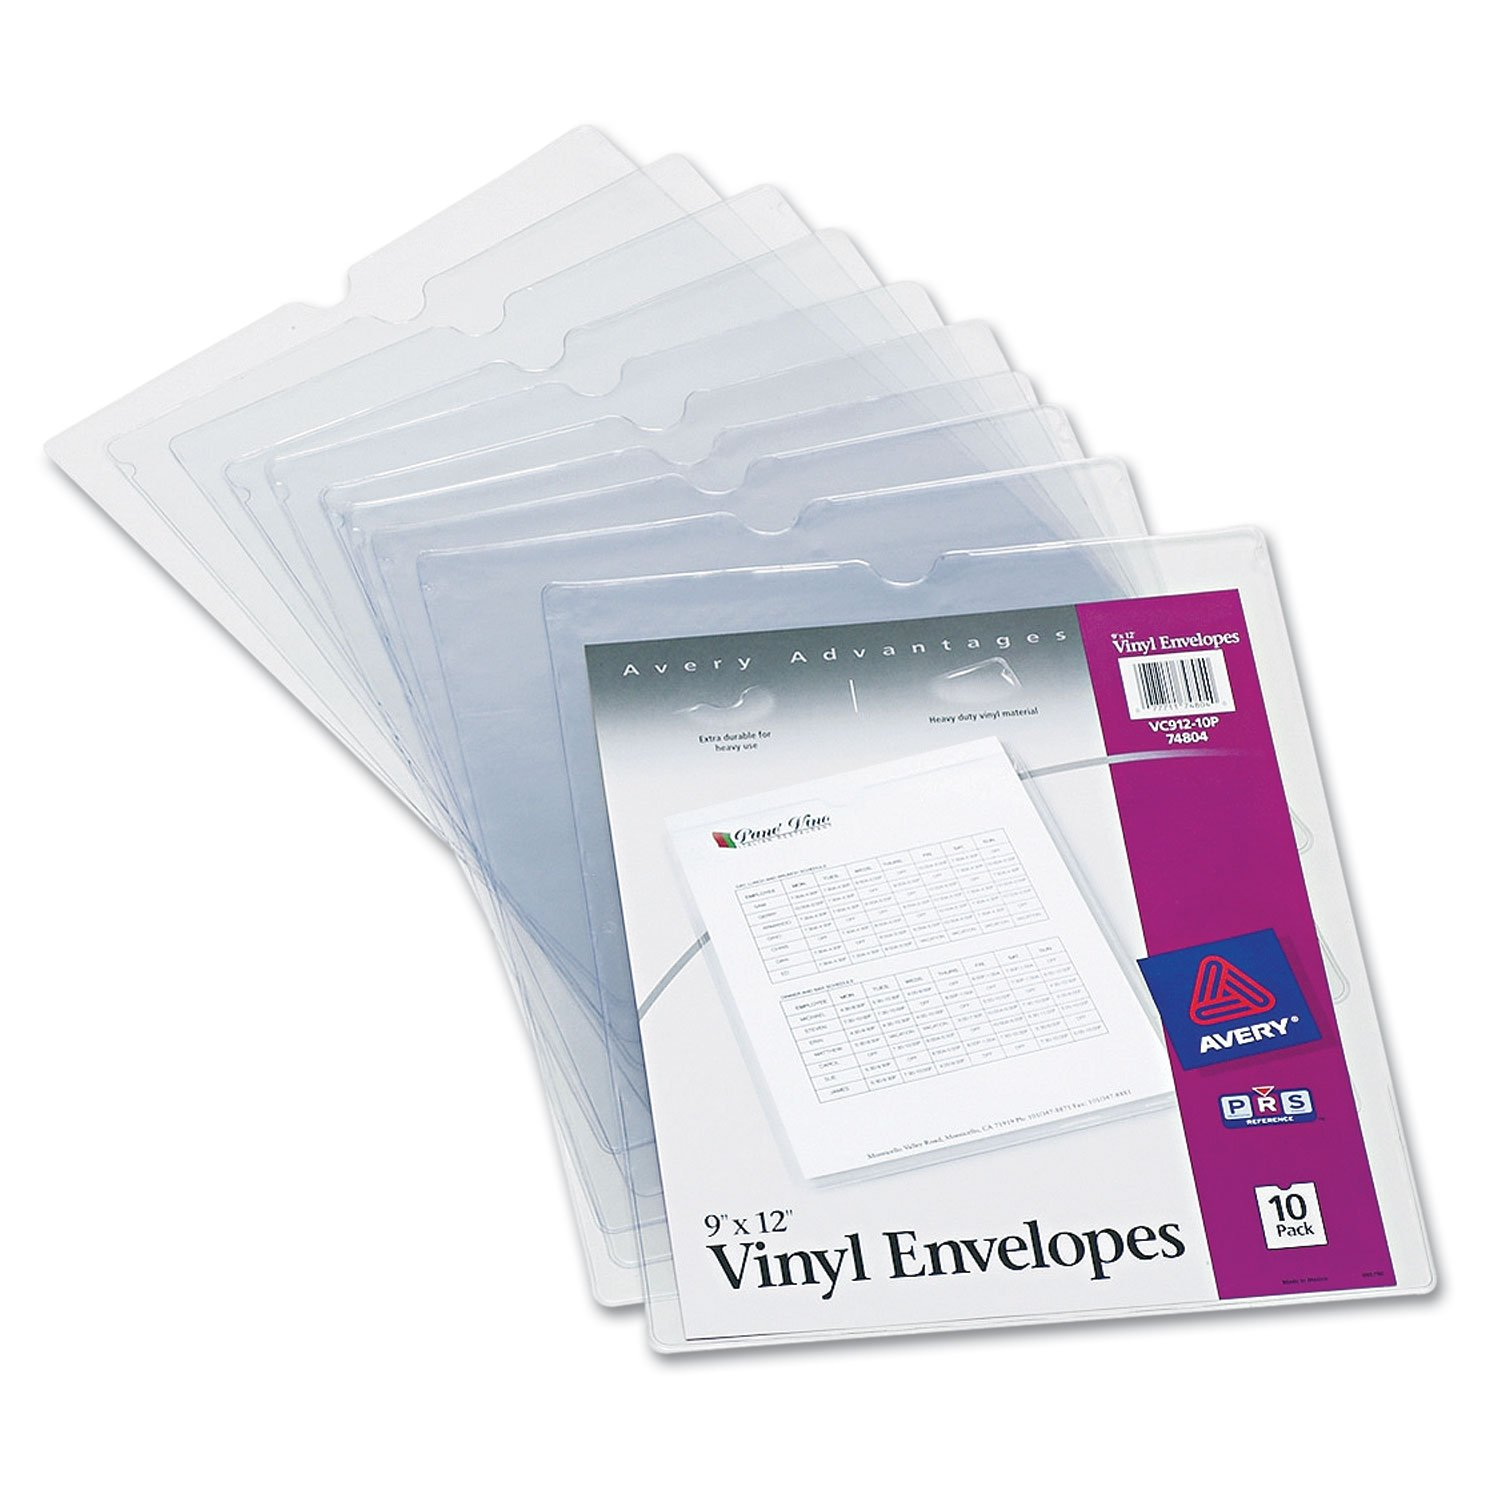 Avery 74804 Top-Load Clear Vinyl Envelopes w/Thumb Notch, 9'' x 12'', Clear, 10/Pack